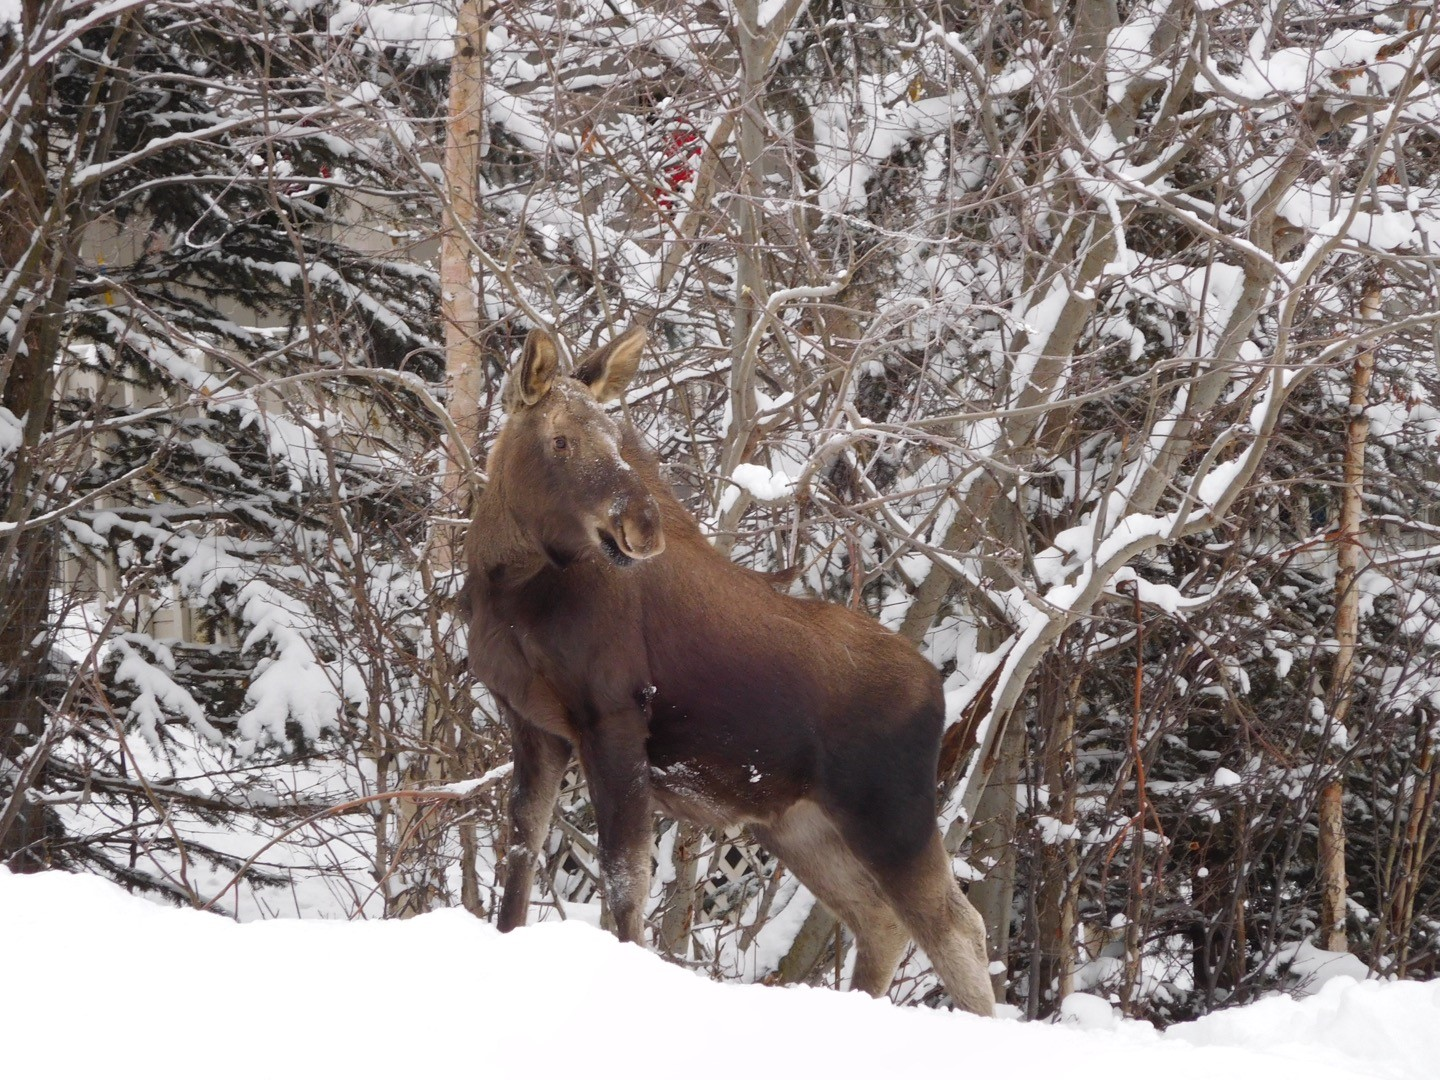 Moose walking over snow Anchorage